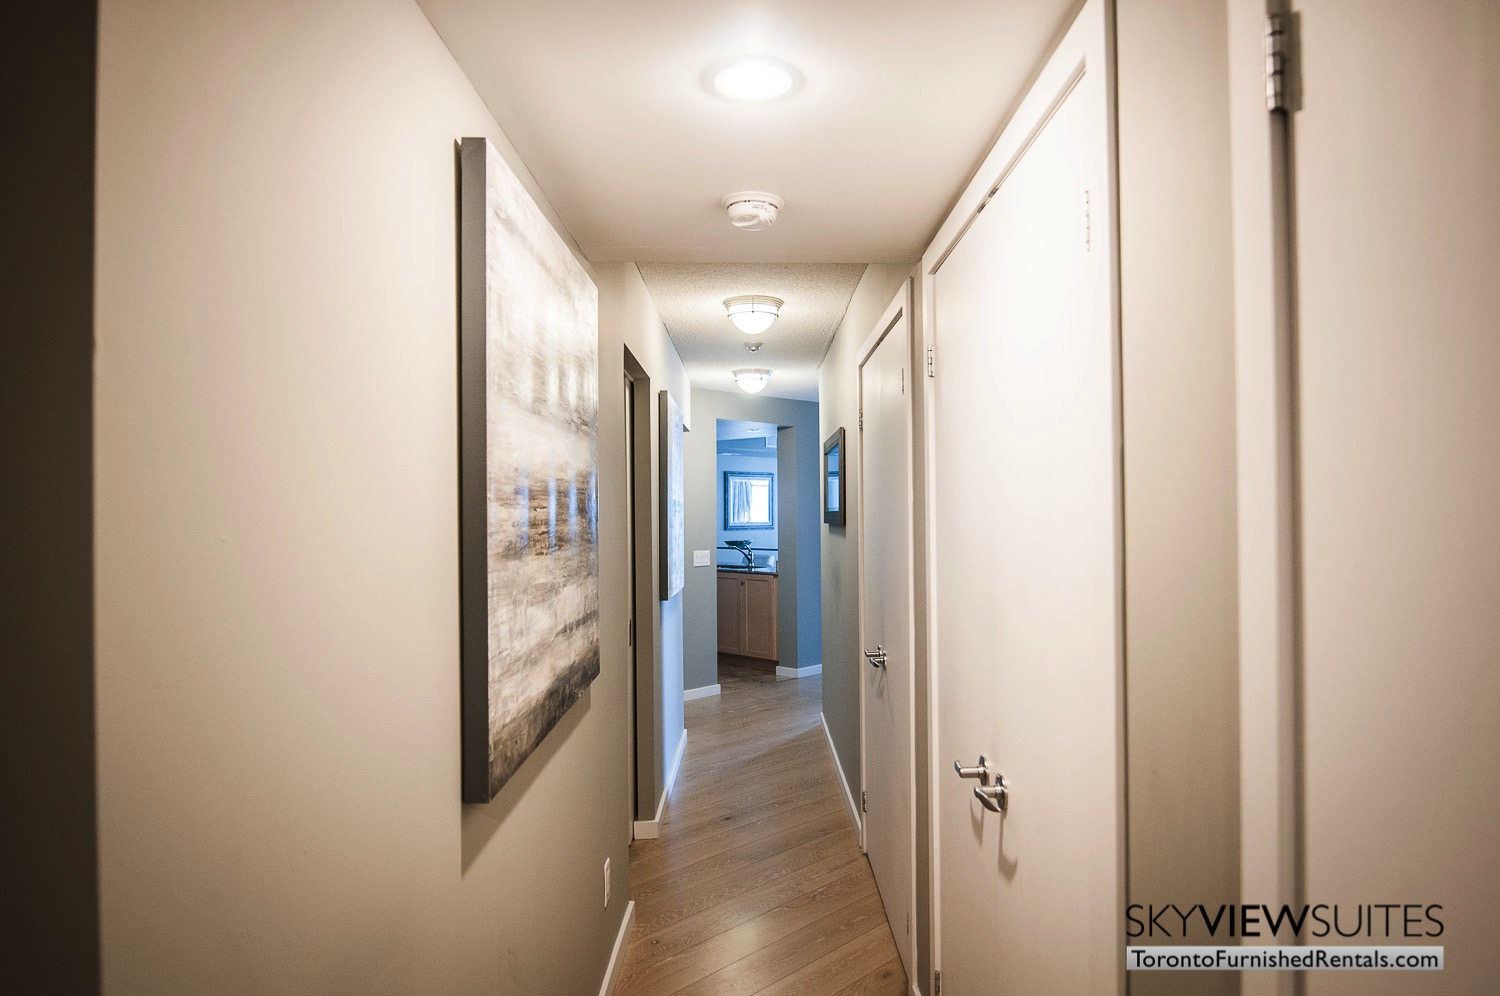 furnished rentals toronto waterfront hallway